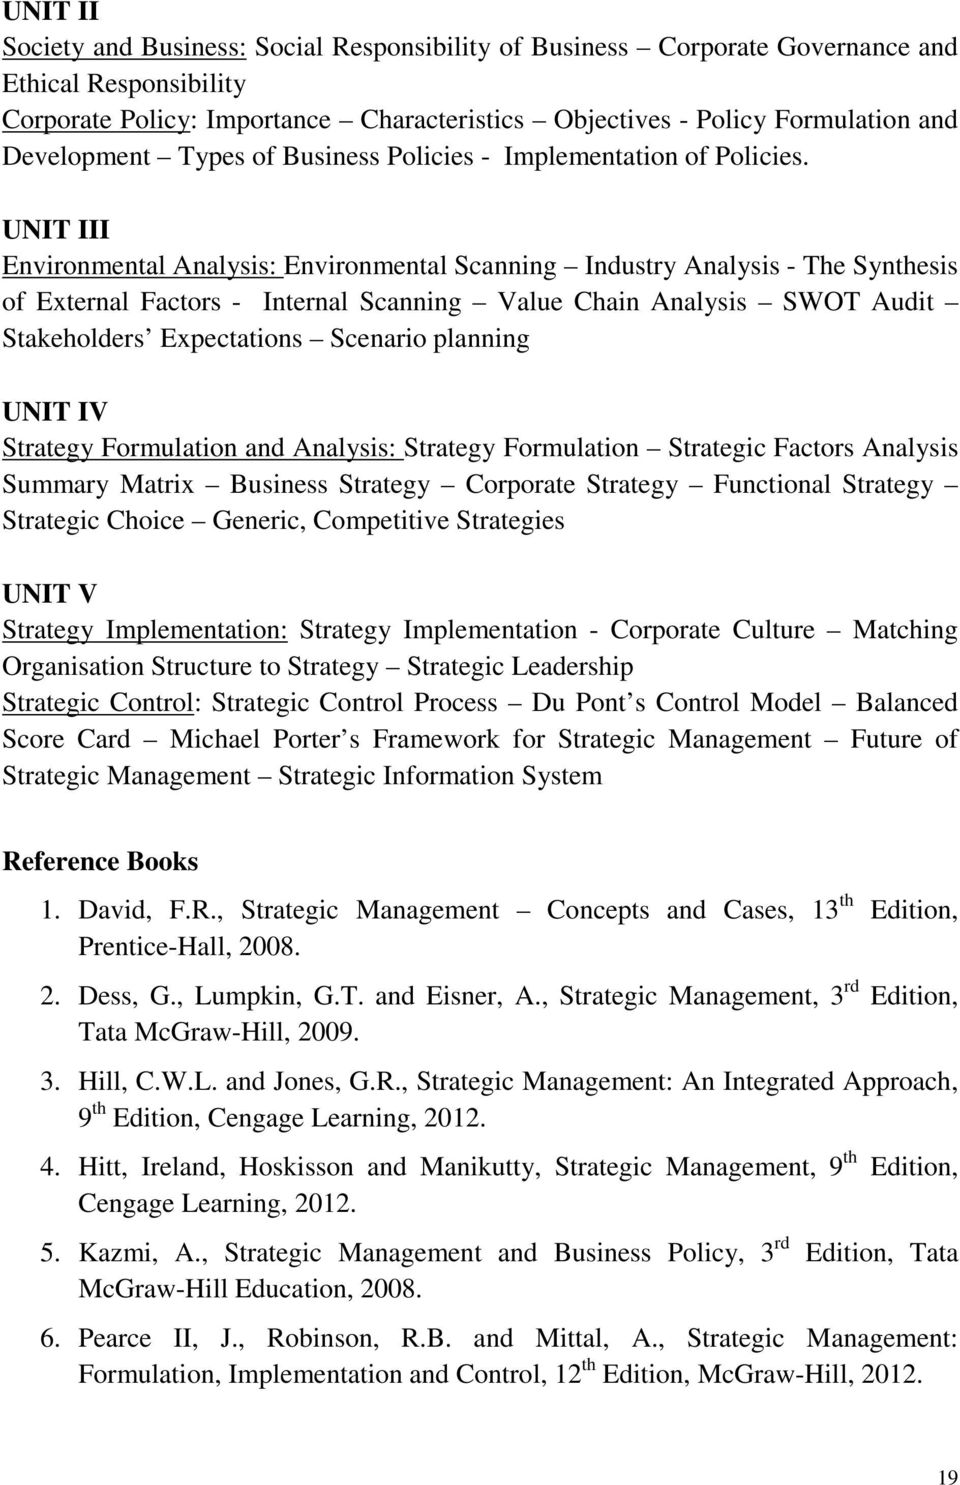 UNIT III Environmental Analysis: Environmental Scanning Industry Analysis - The Synthesis of External Factors - Internal Scanning Value Chain Analysis SWOT Audit Stakeholders Expectations Scenario